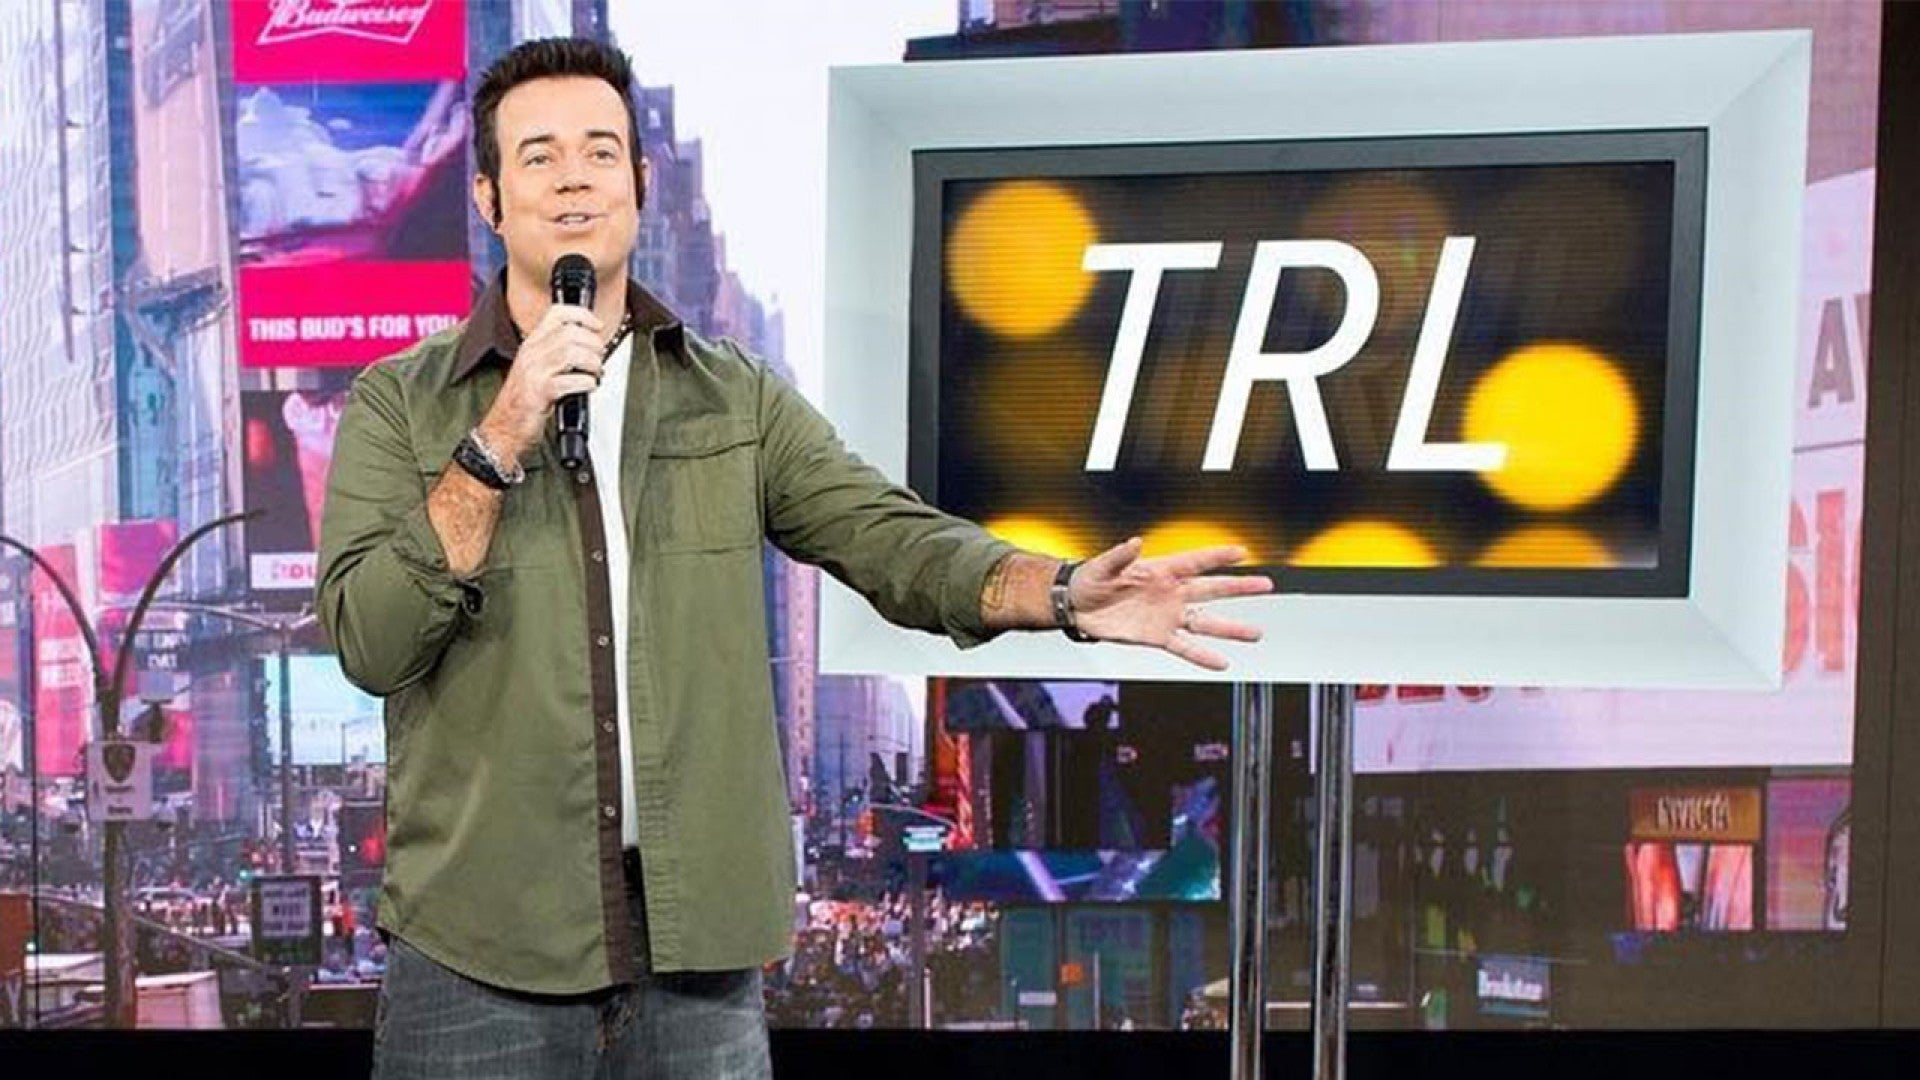 Carson Daly Halloween Costume 2020 Carson Daly Channels His MTV 'TRL' Days With 90s Themed Halloween